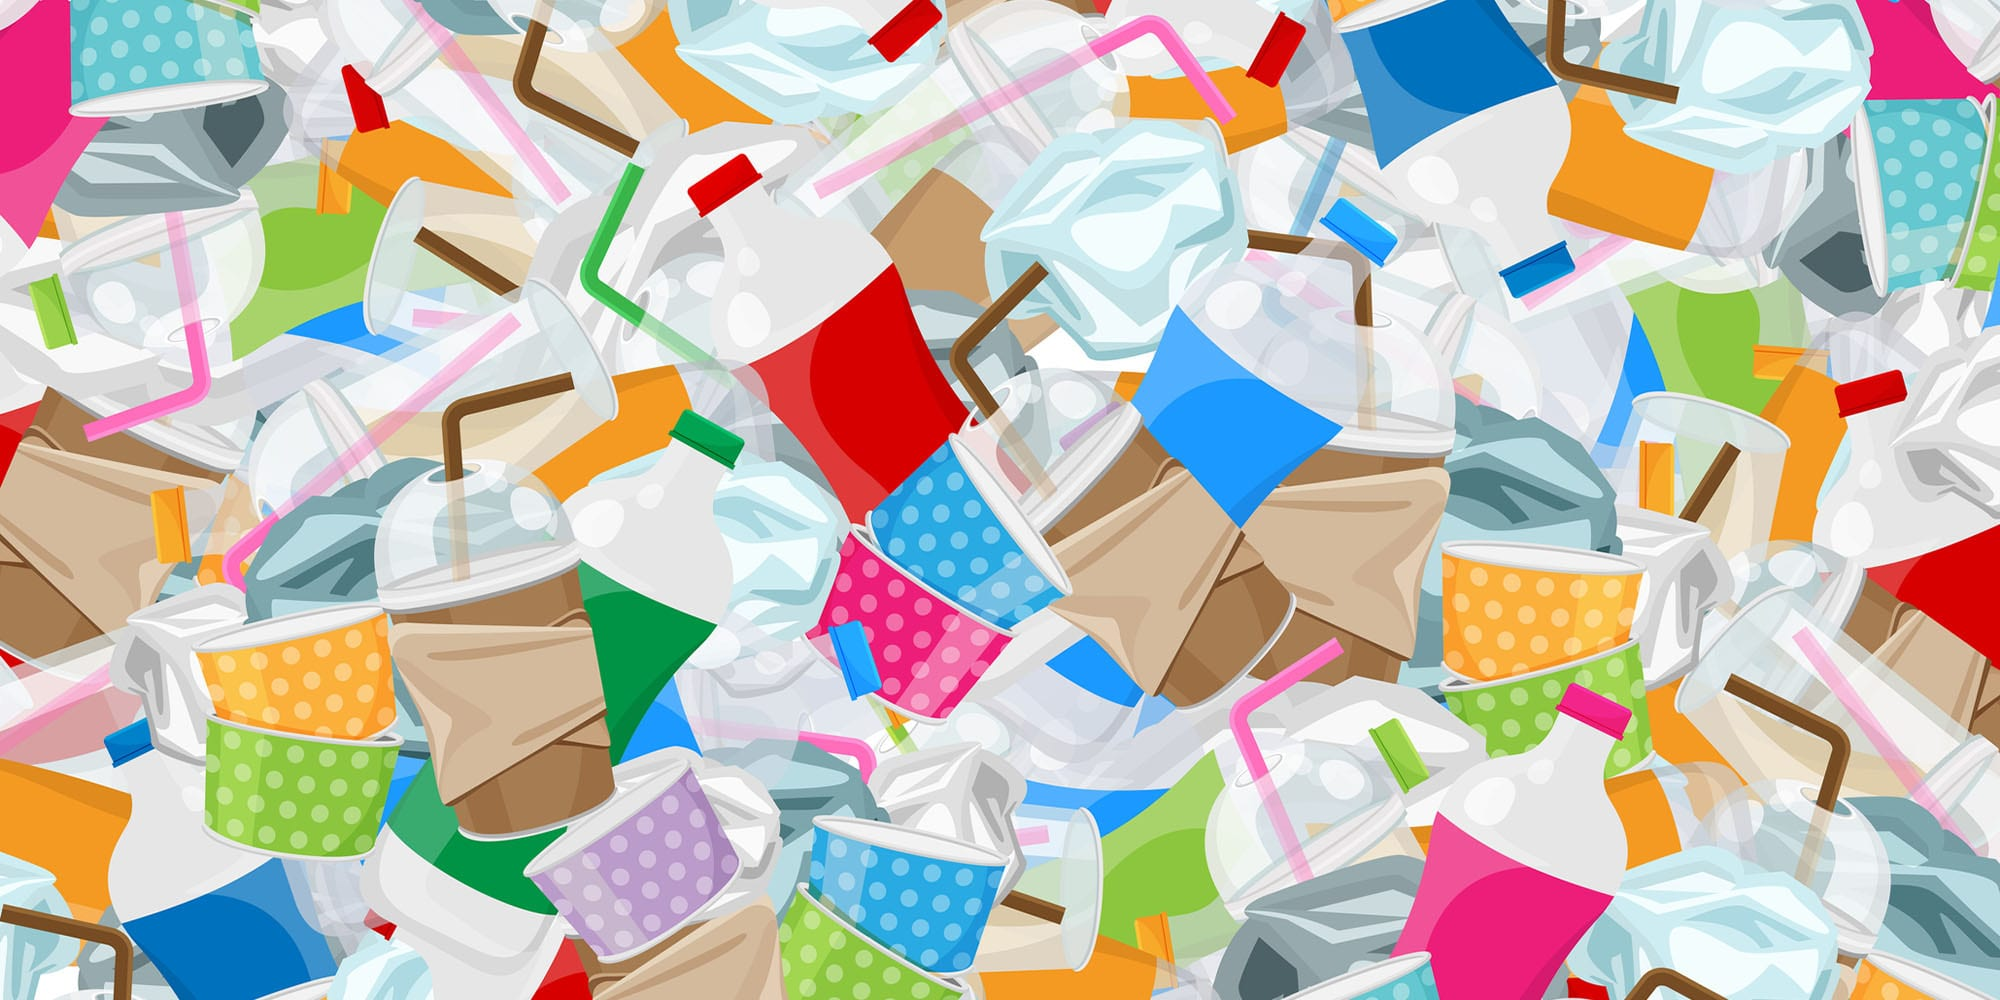 Rethinking the future of plastic